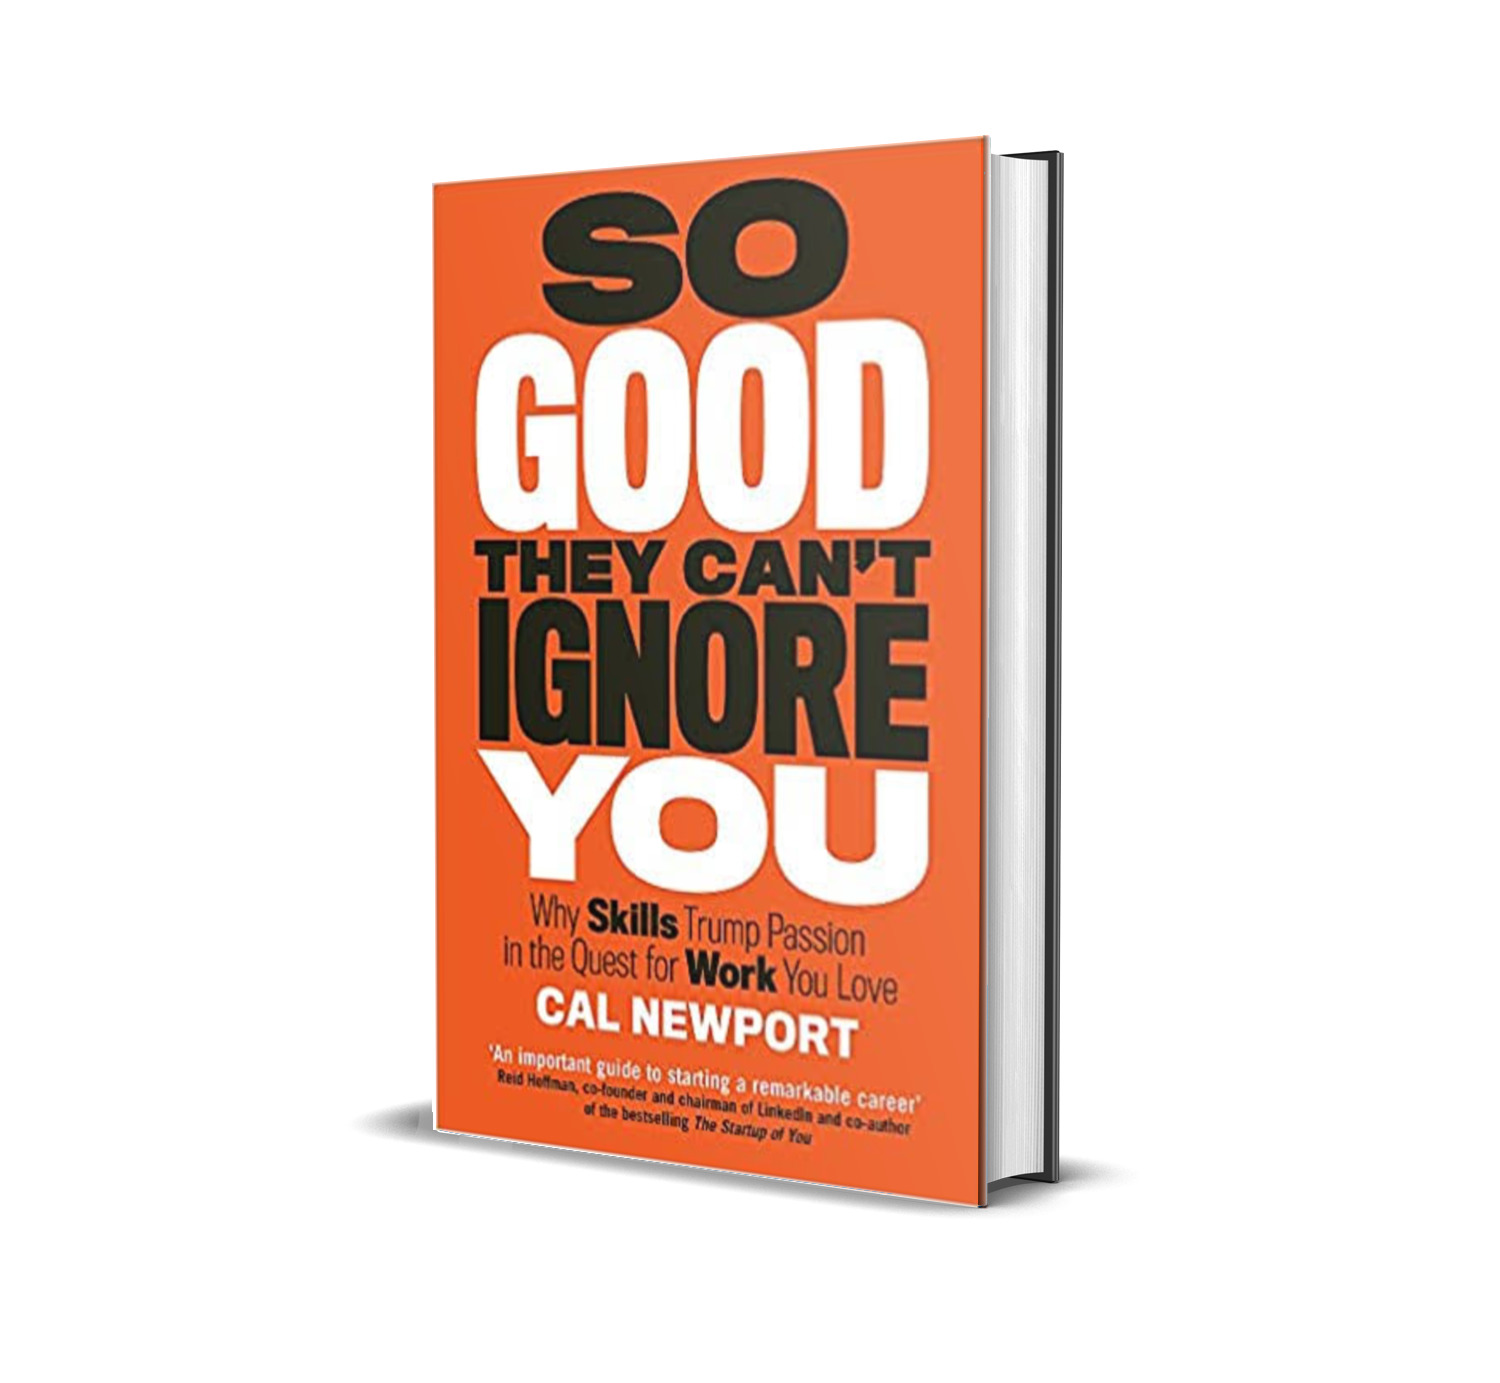 So good they can't ignore you- Cal Newport